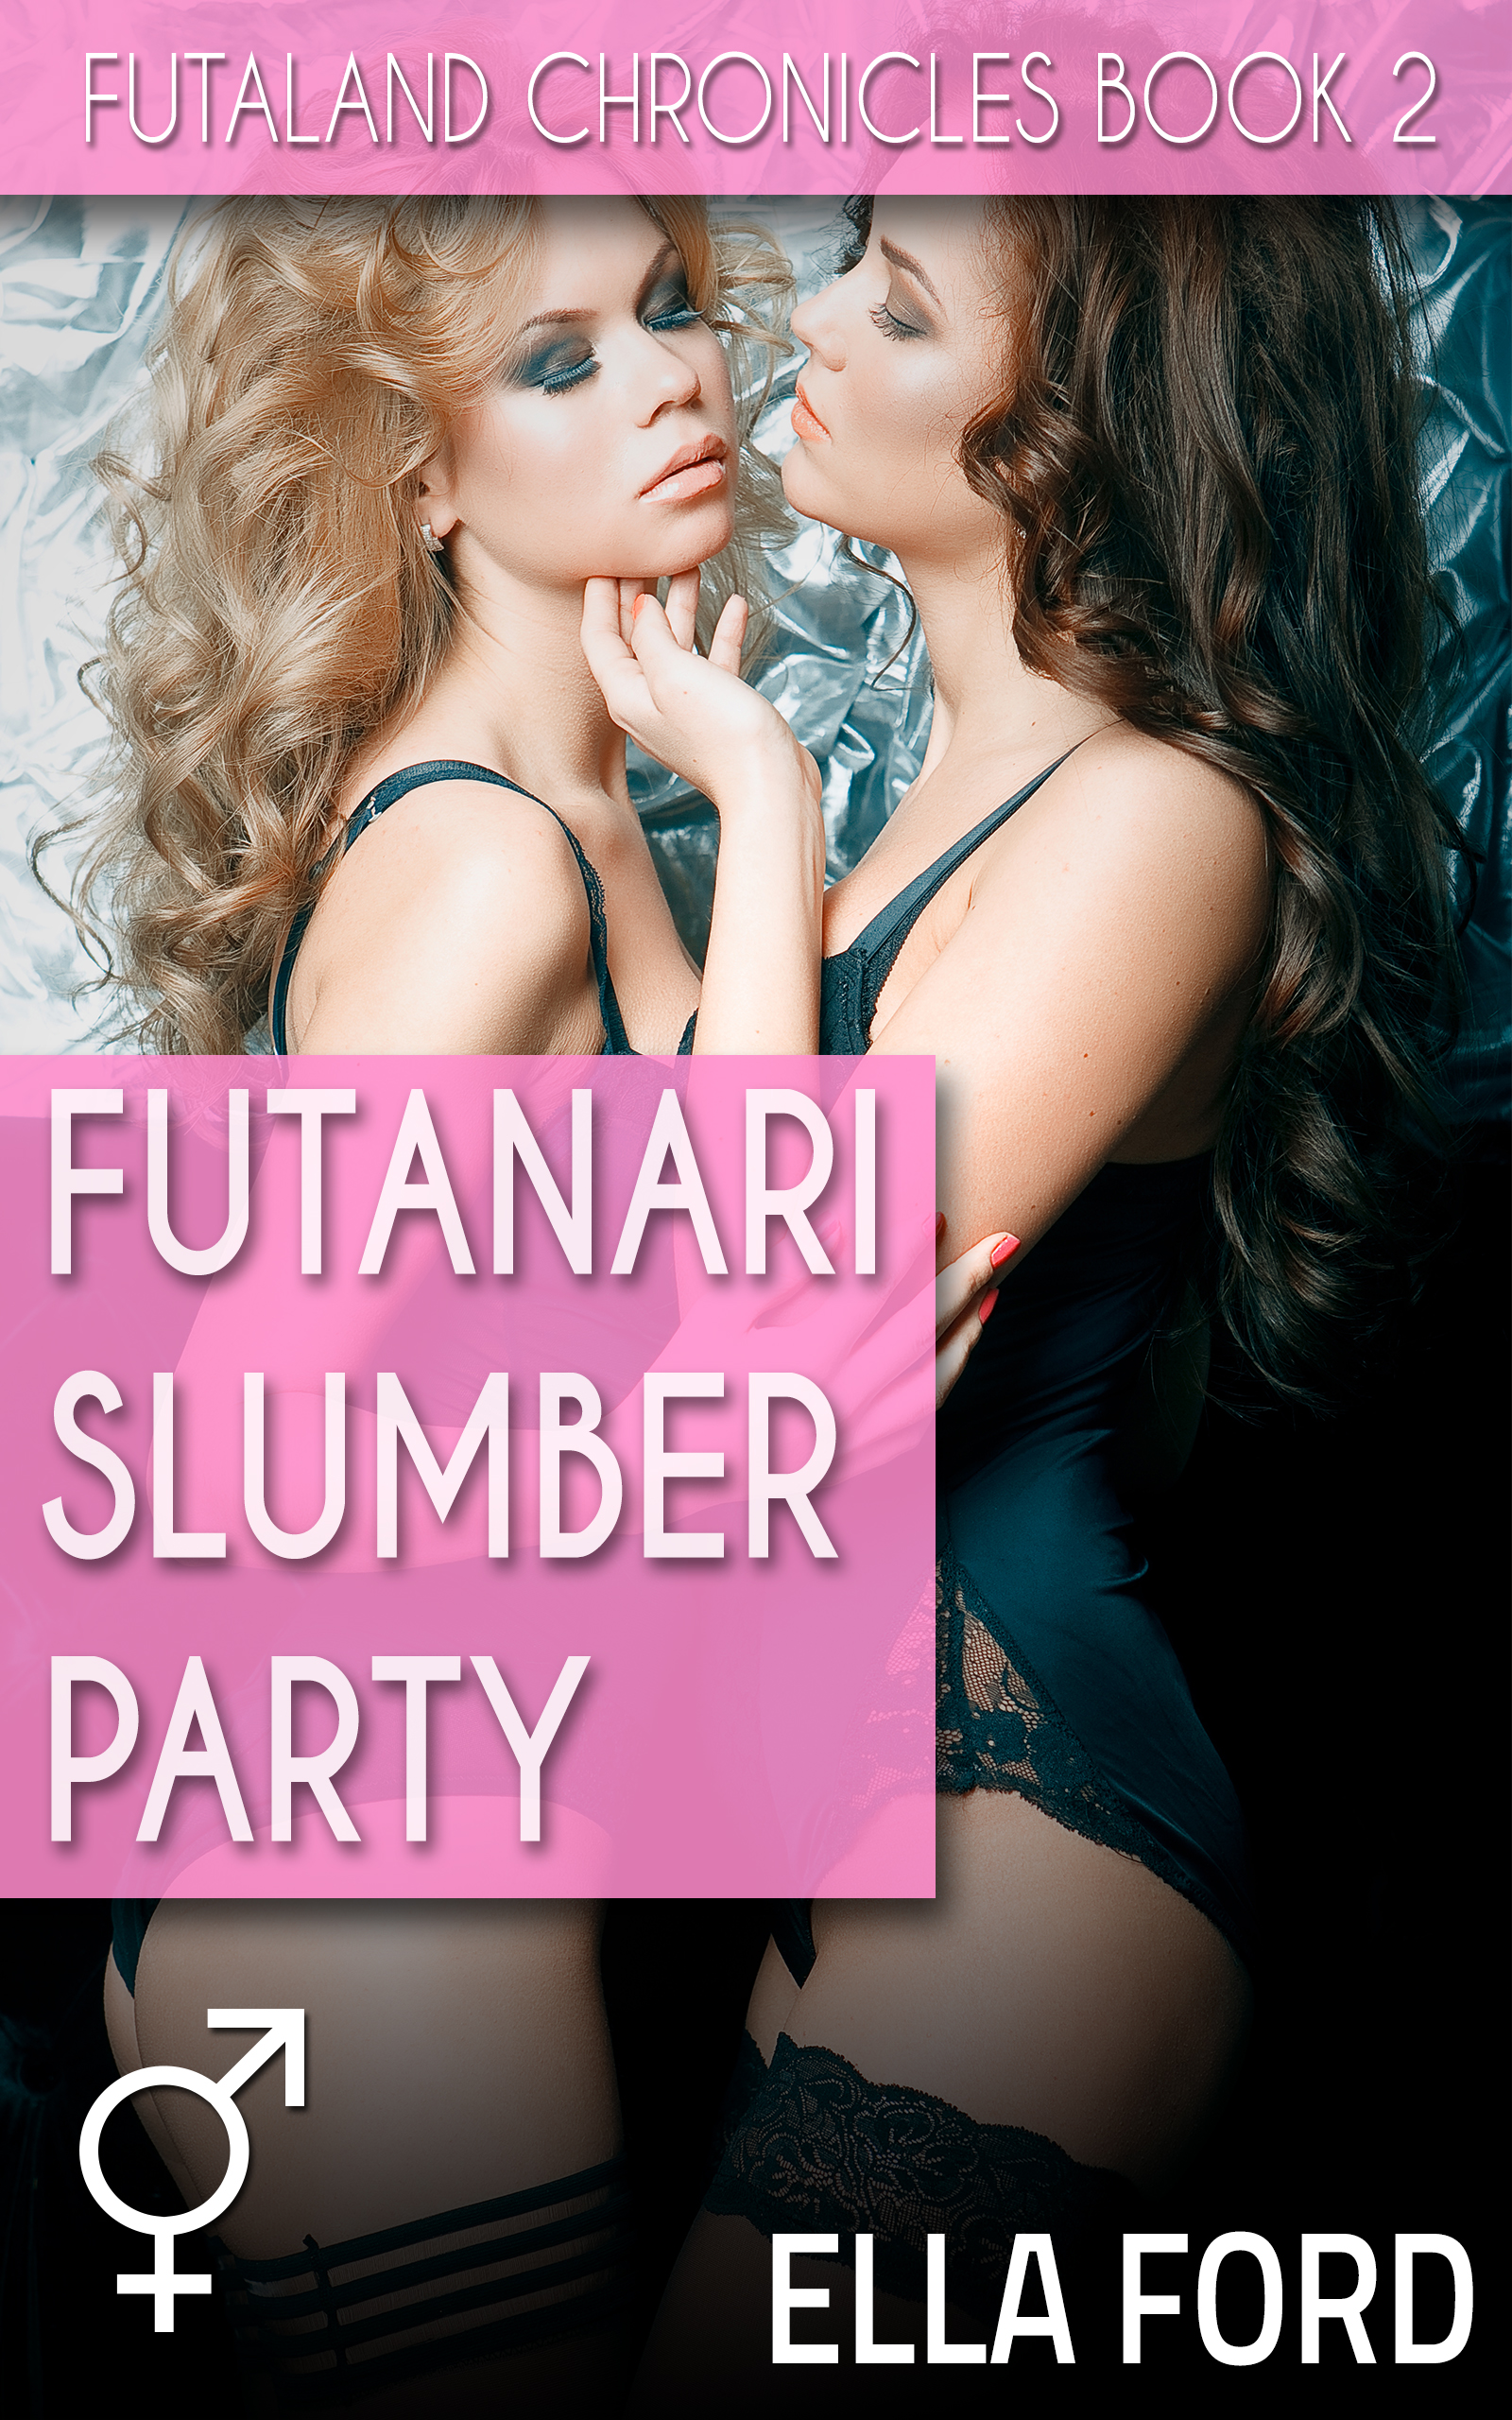 Futanari Slumber Party by Ella Ford